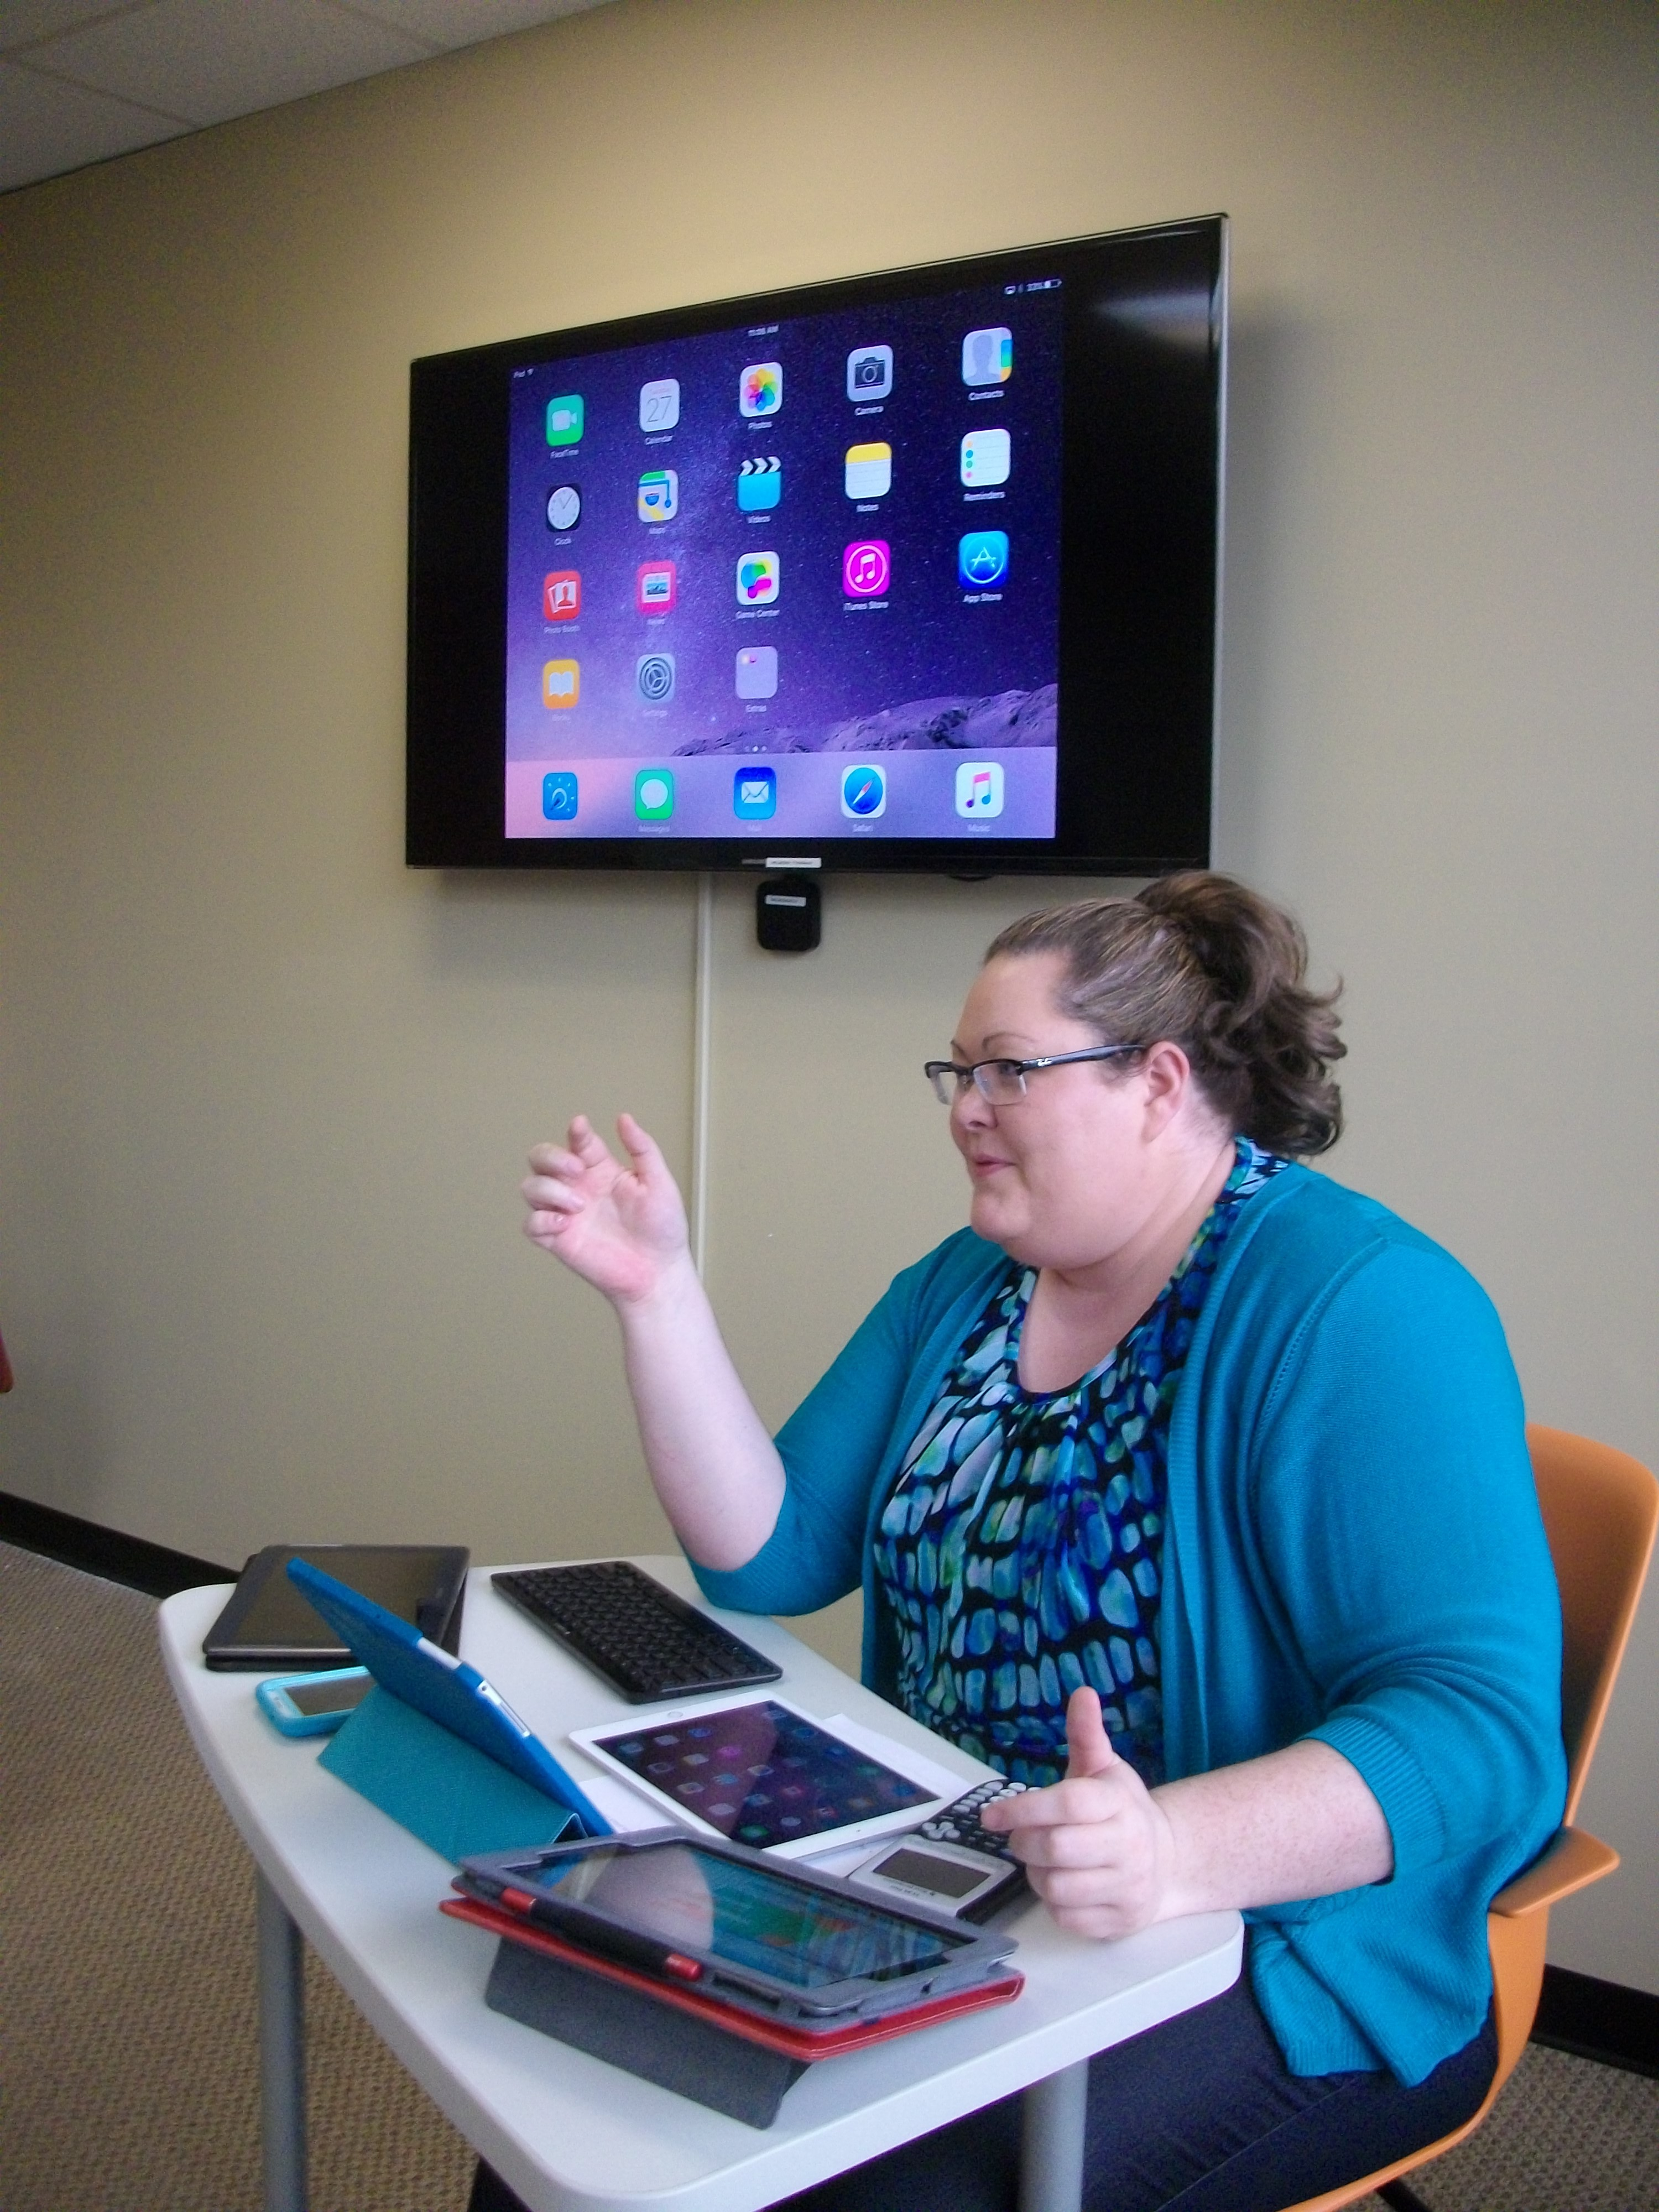 This is an image of Elizabeth Weaver teaching using a variety of mobile devices.